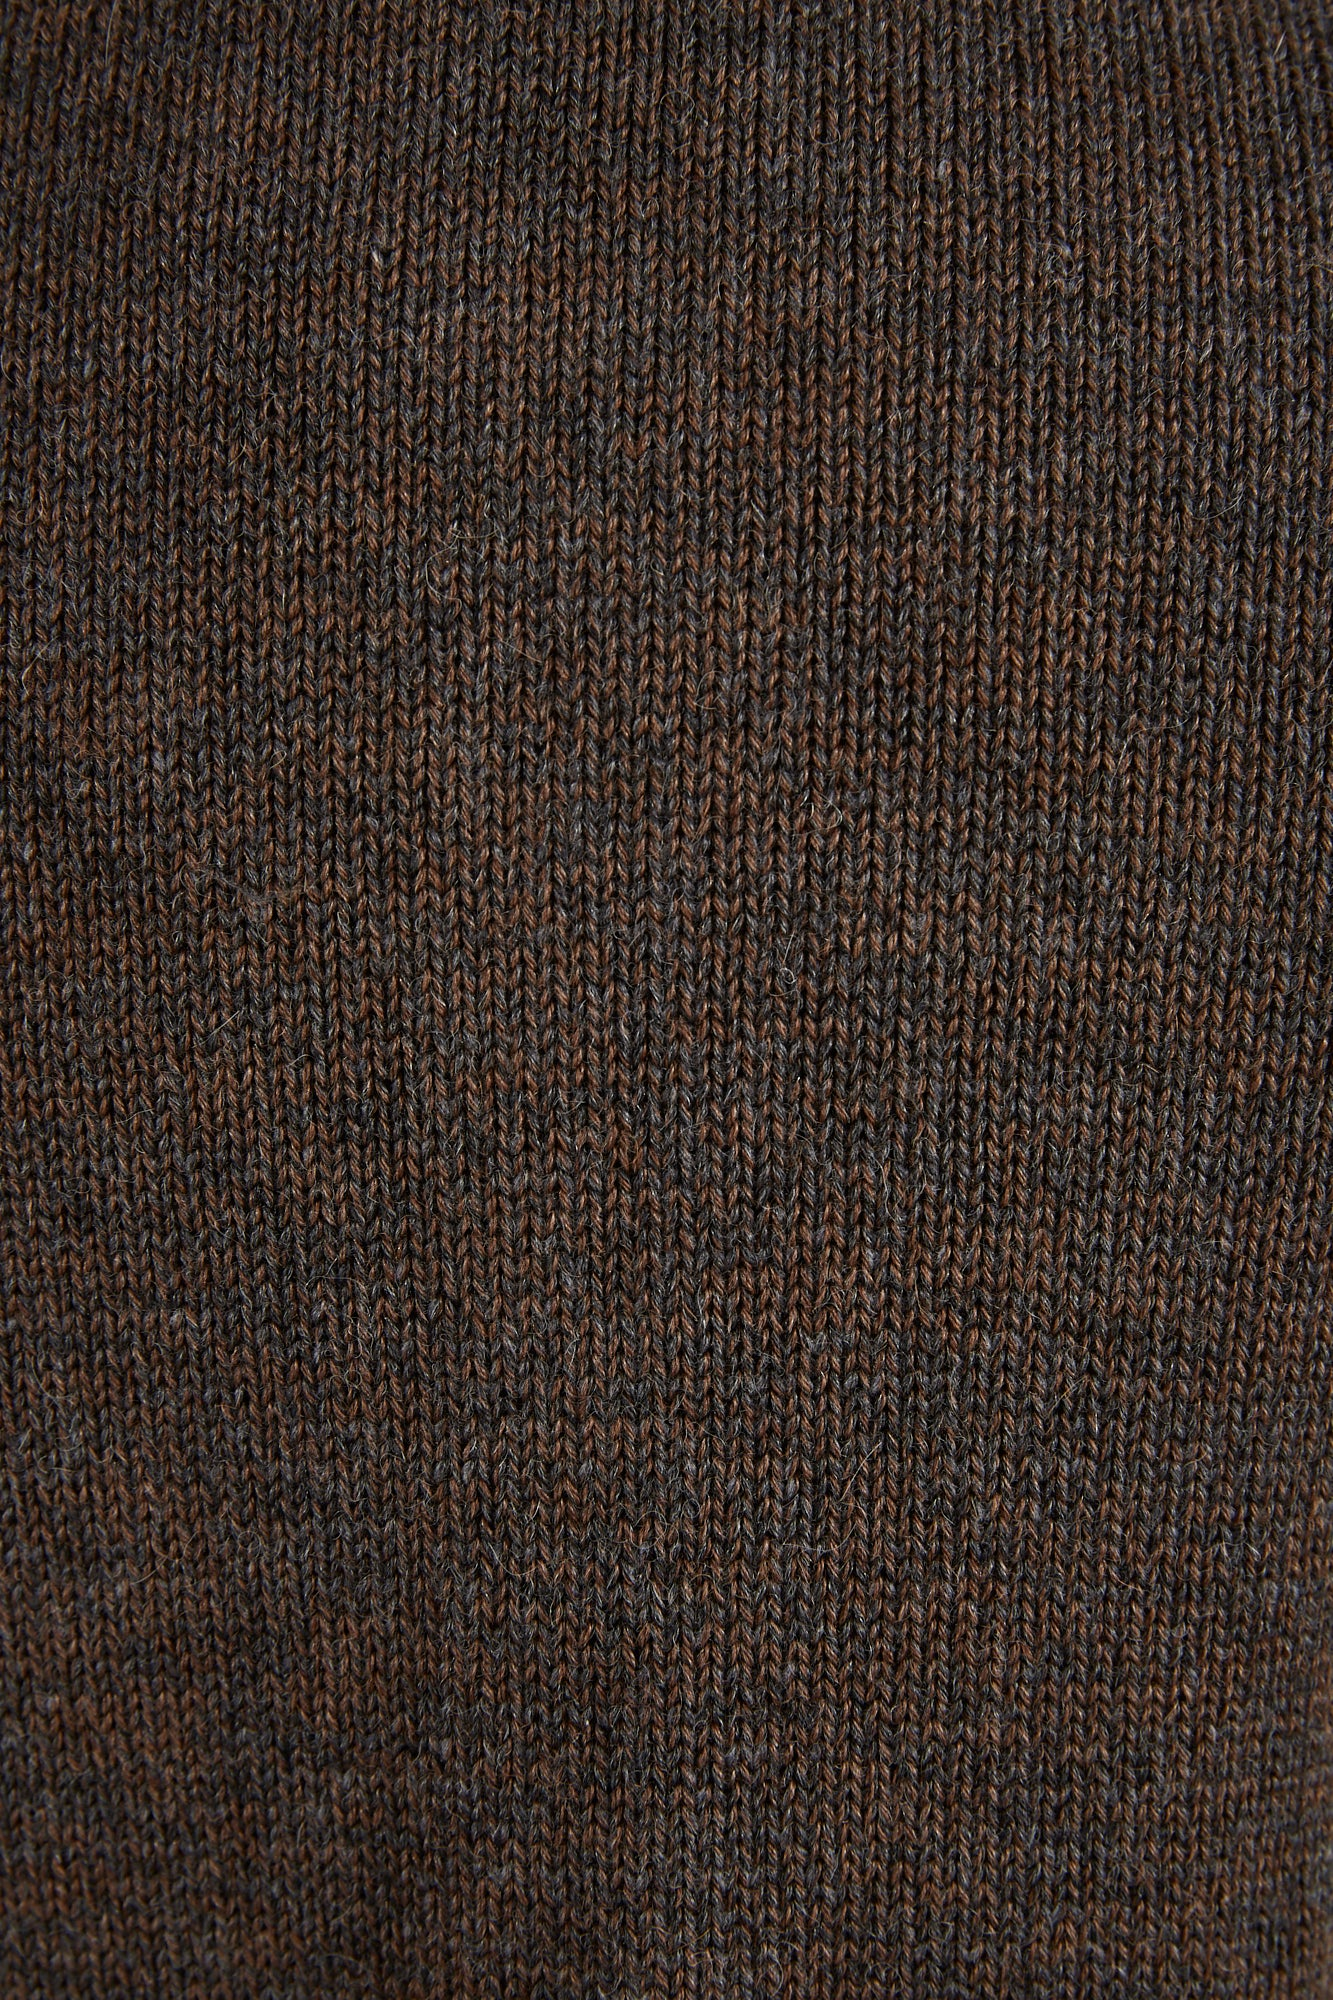 Inis Meáin Brown Wool-Alpaca Shirt Jacket Sweater - Sweaters - Inis Meáin - LALONDE's